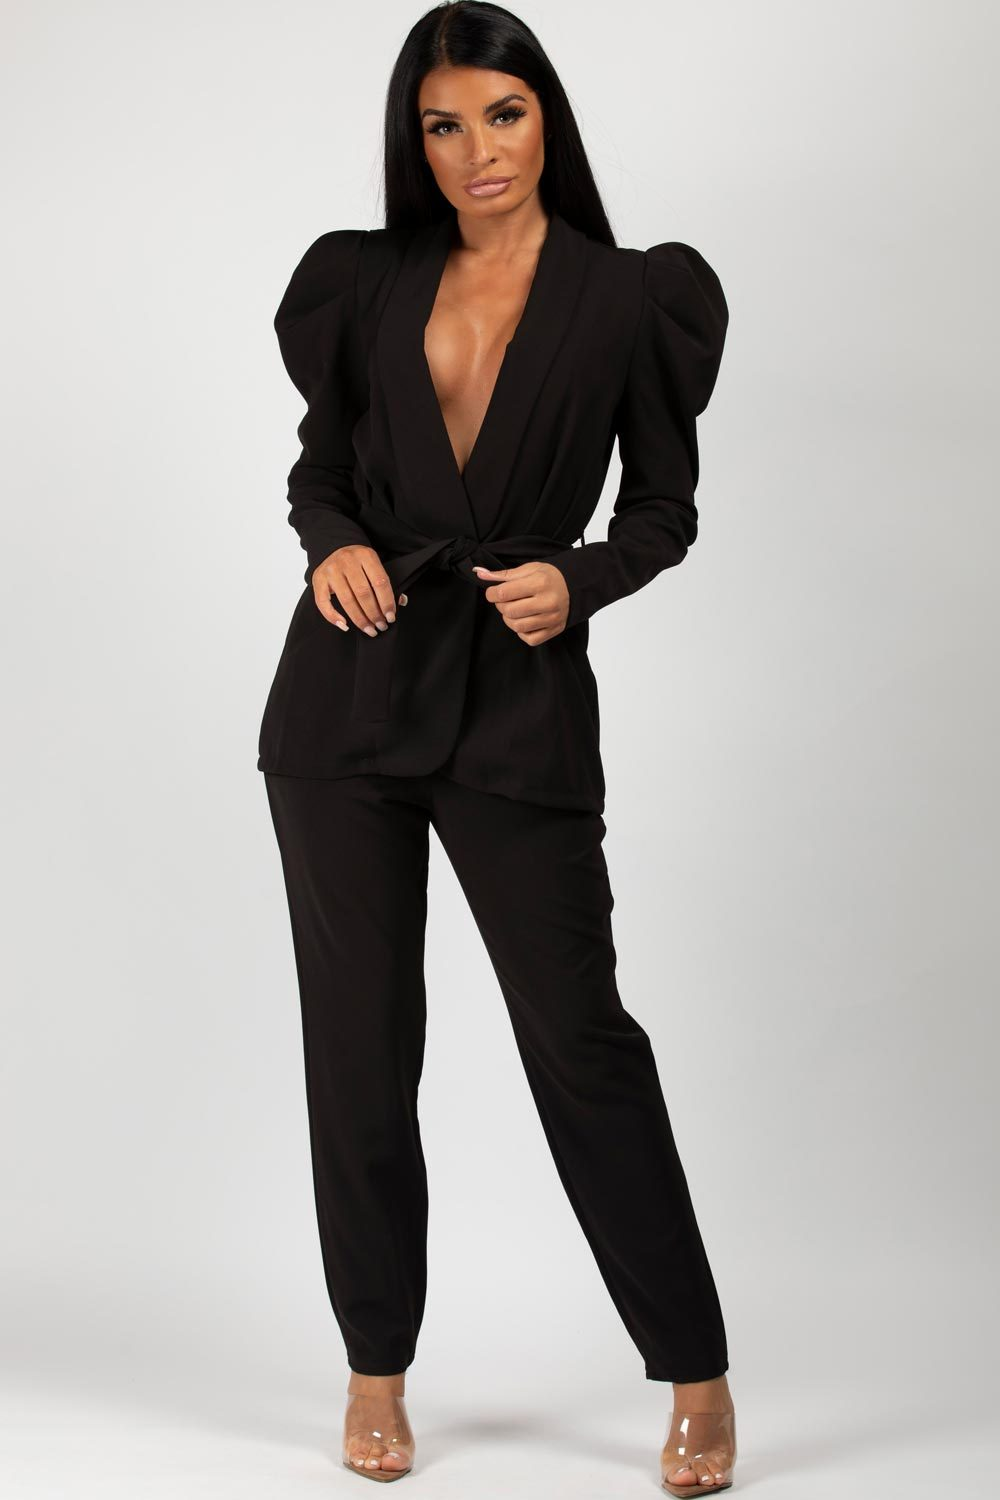 Puff sleeve blazer and trousers set